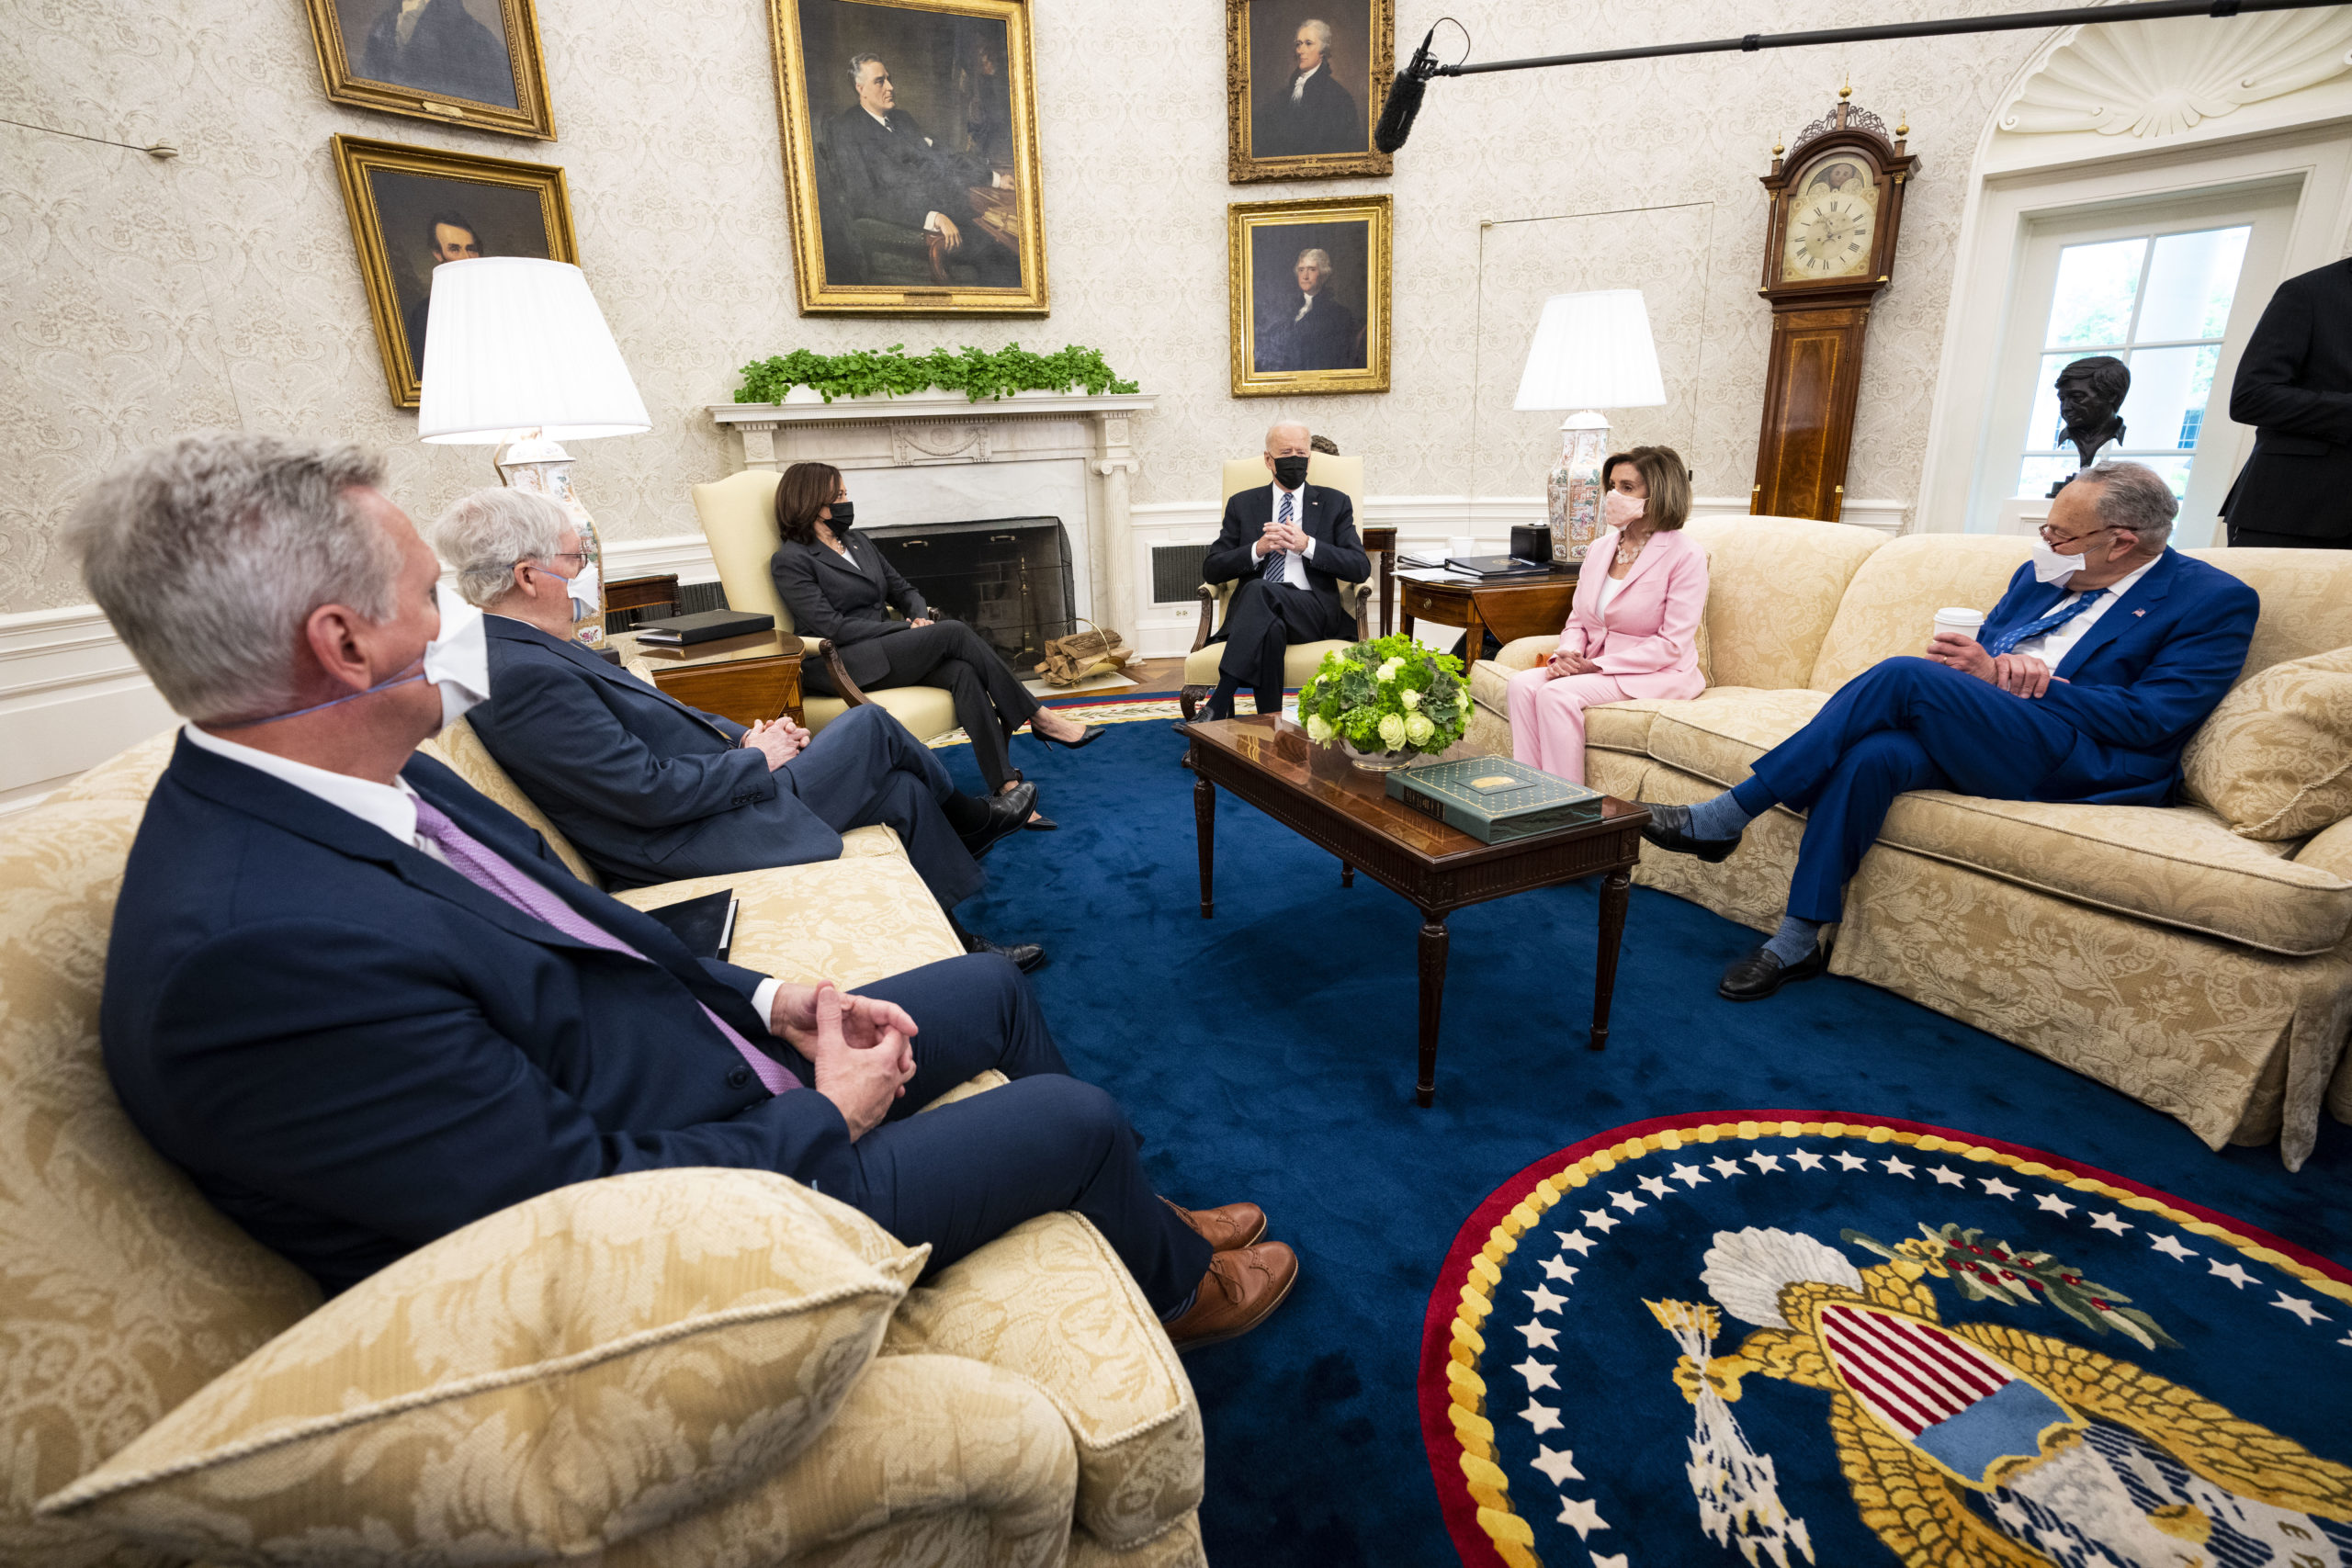 President Joe Biden meets with Republican and Democratic congressional leaders on Wednesday at the White House. (Doug Mills/Pool/Getty Images)